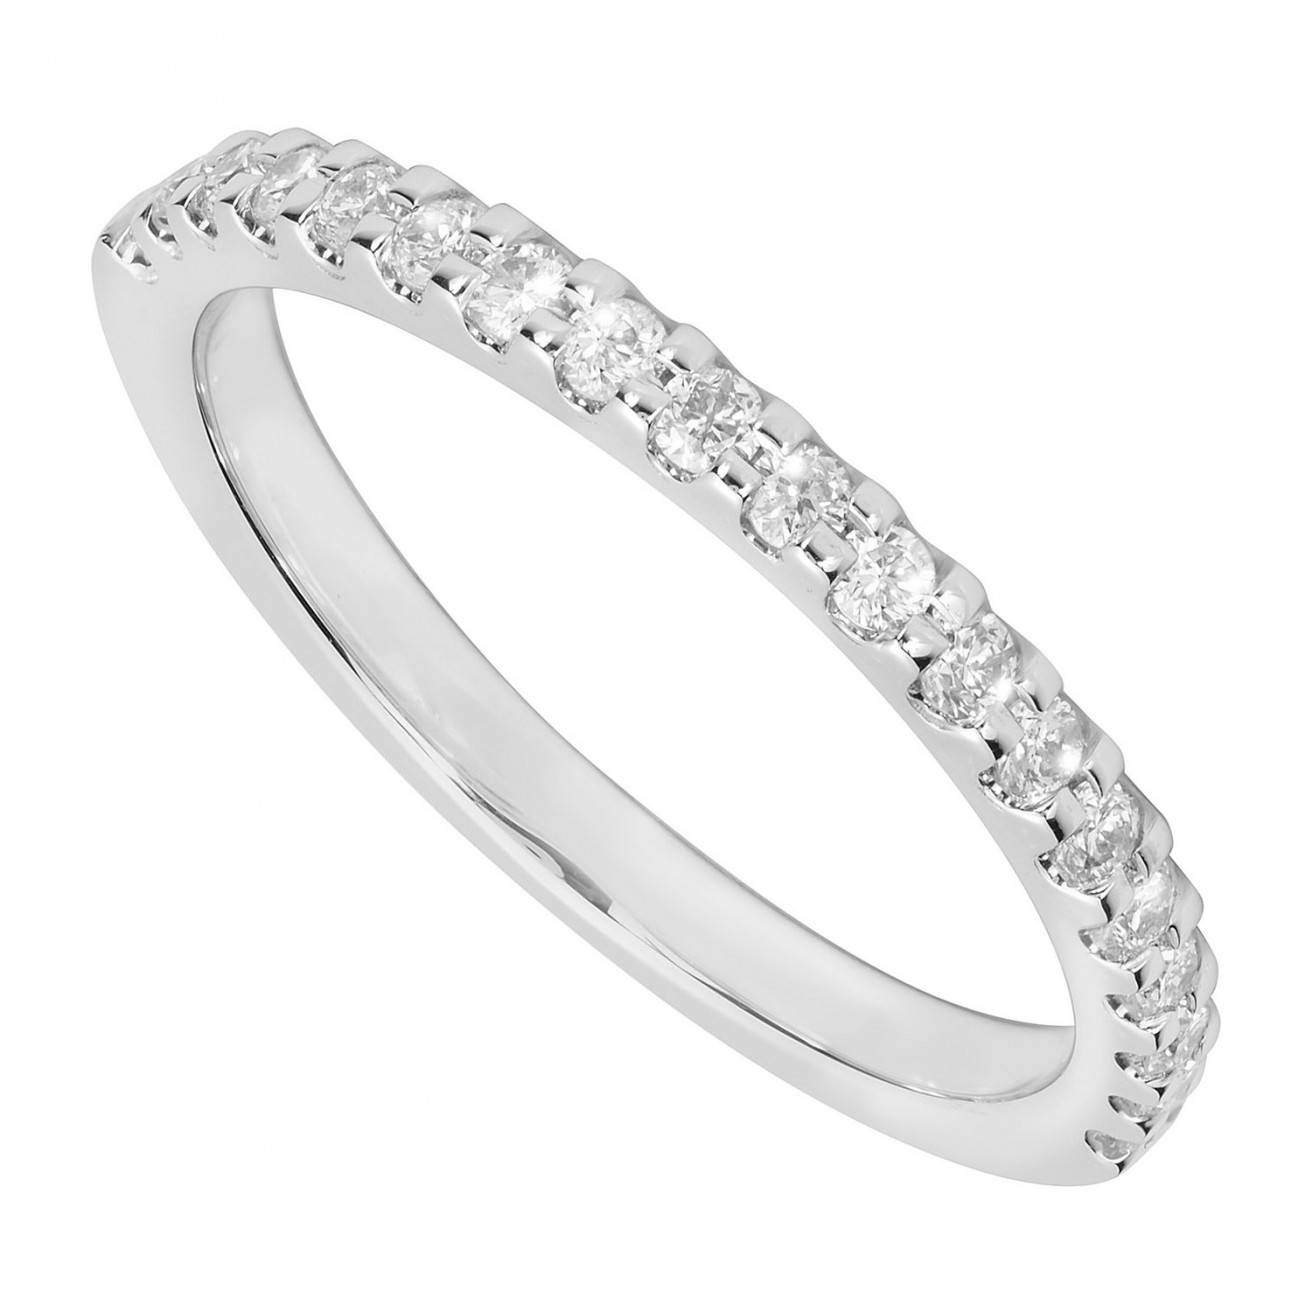 Beautifully Crafted Wedding Rings For Him And Her Within Diamond Wedding Rings For Her (View 11 of 15)